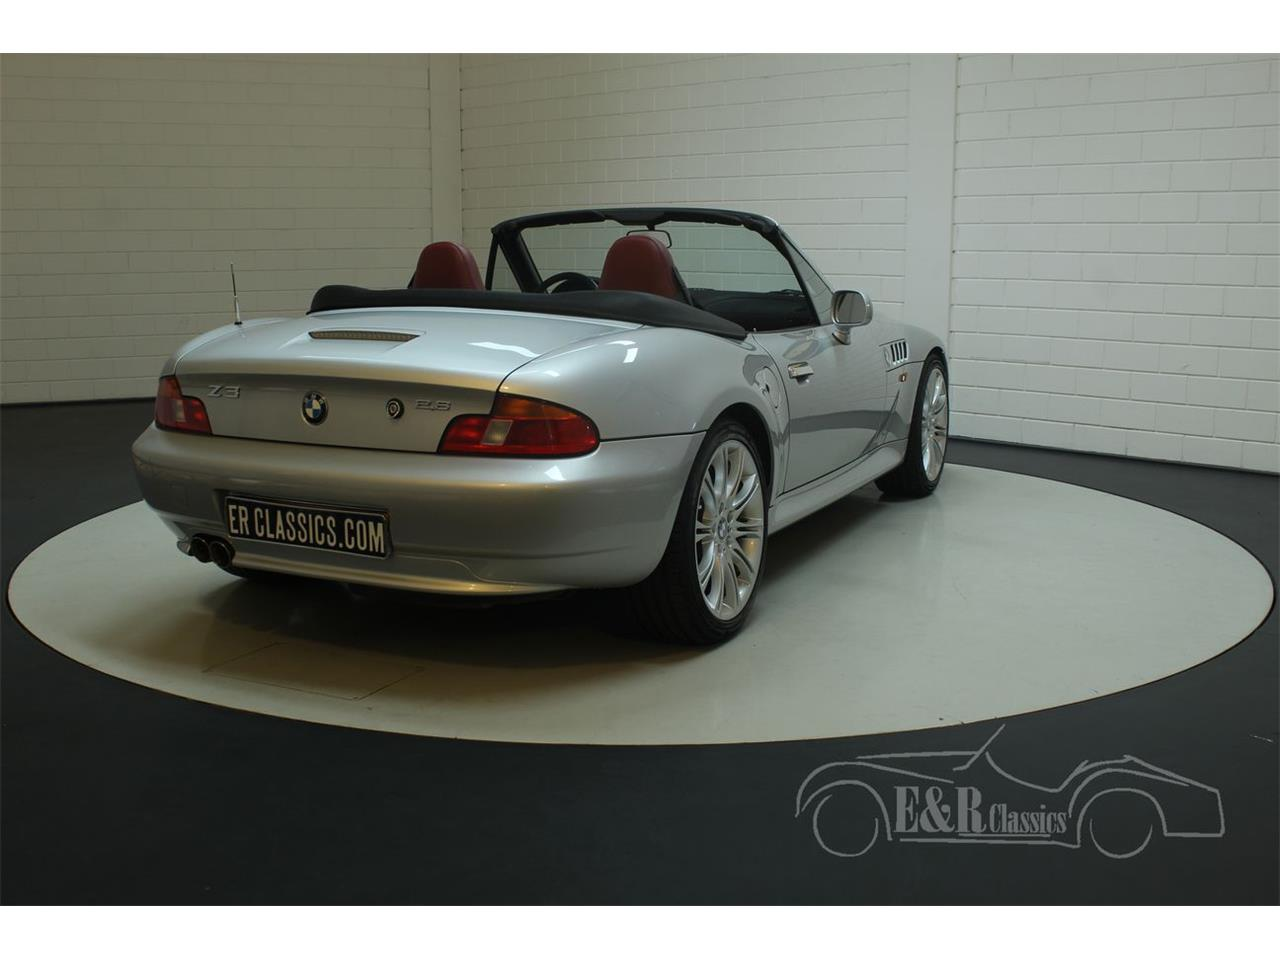 Large Picture of 2001 Z3 located in Noord-Brabant - $19,150.00 - PNX1